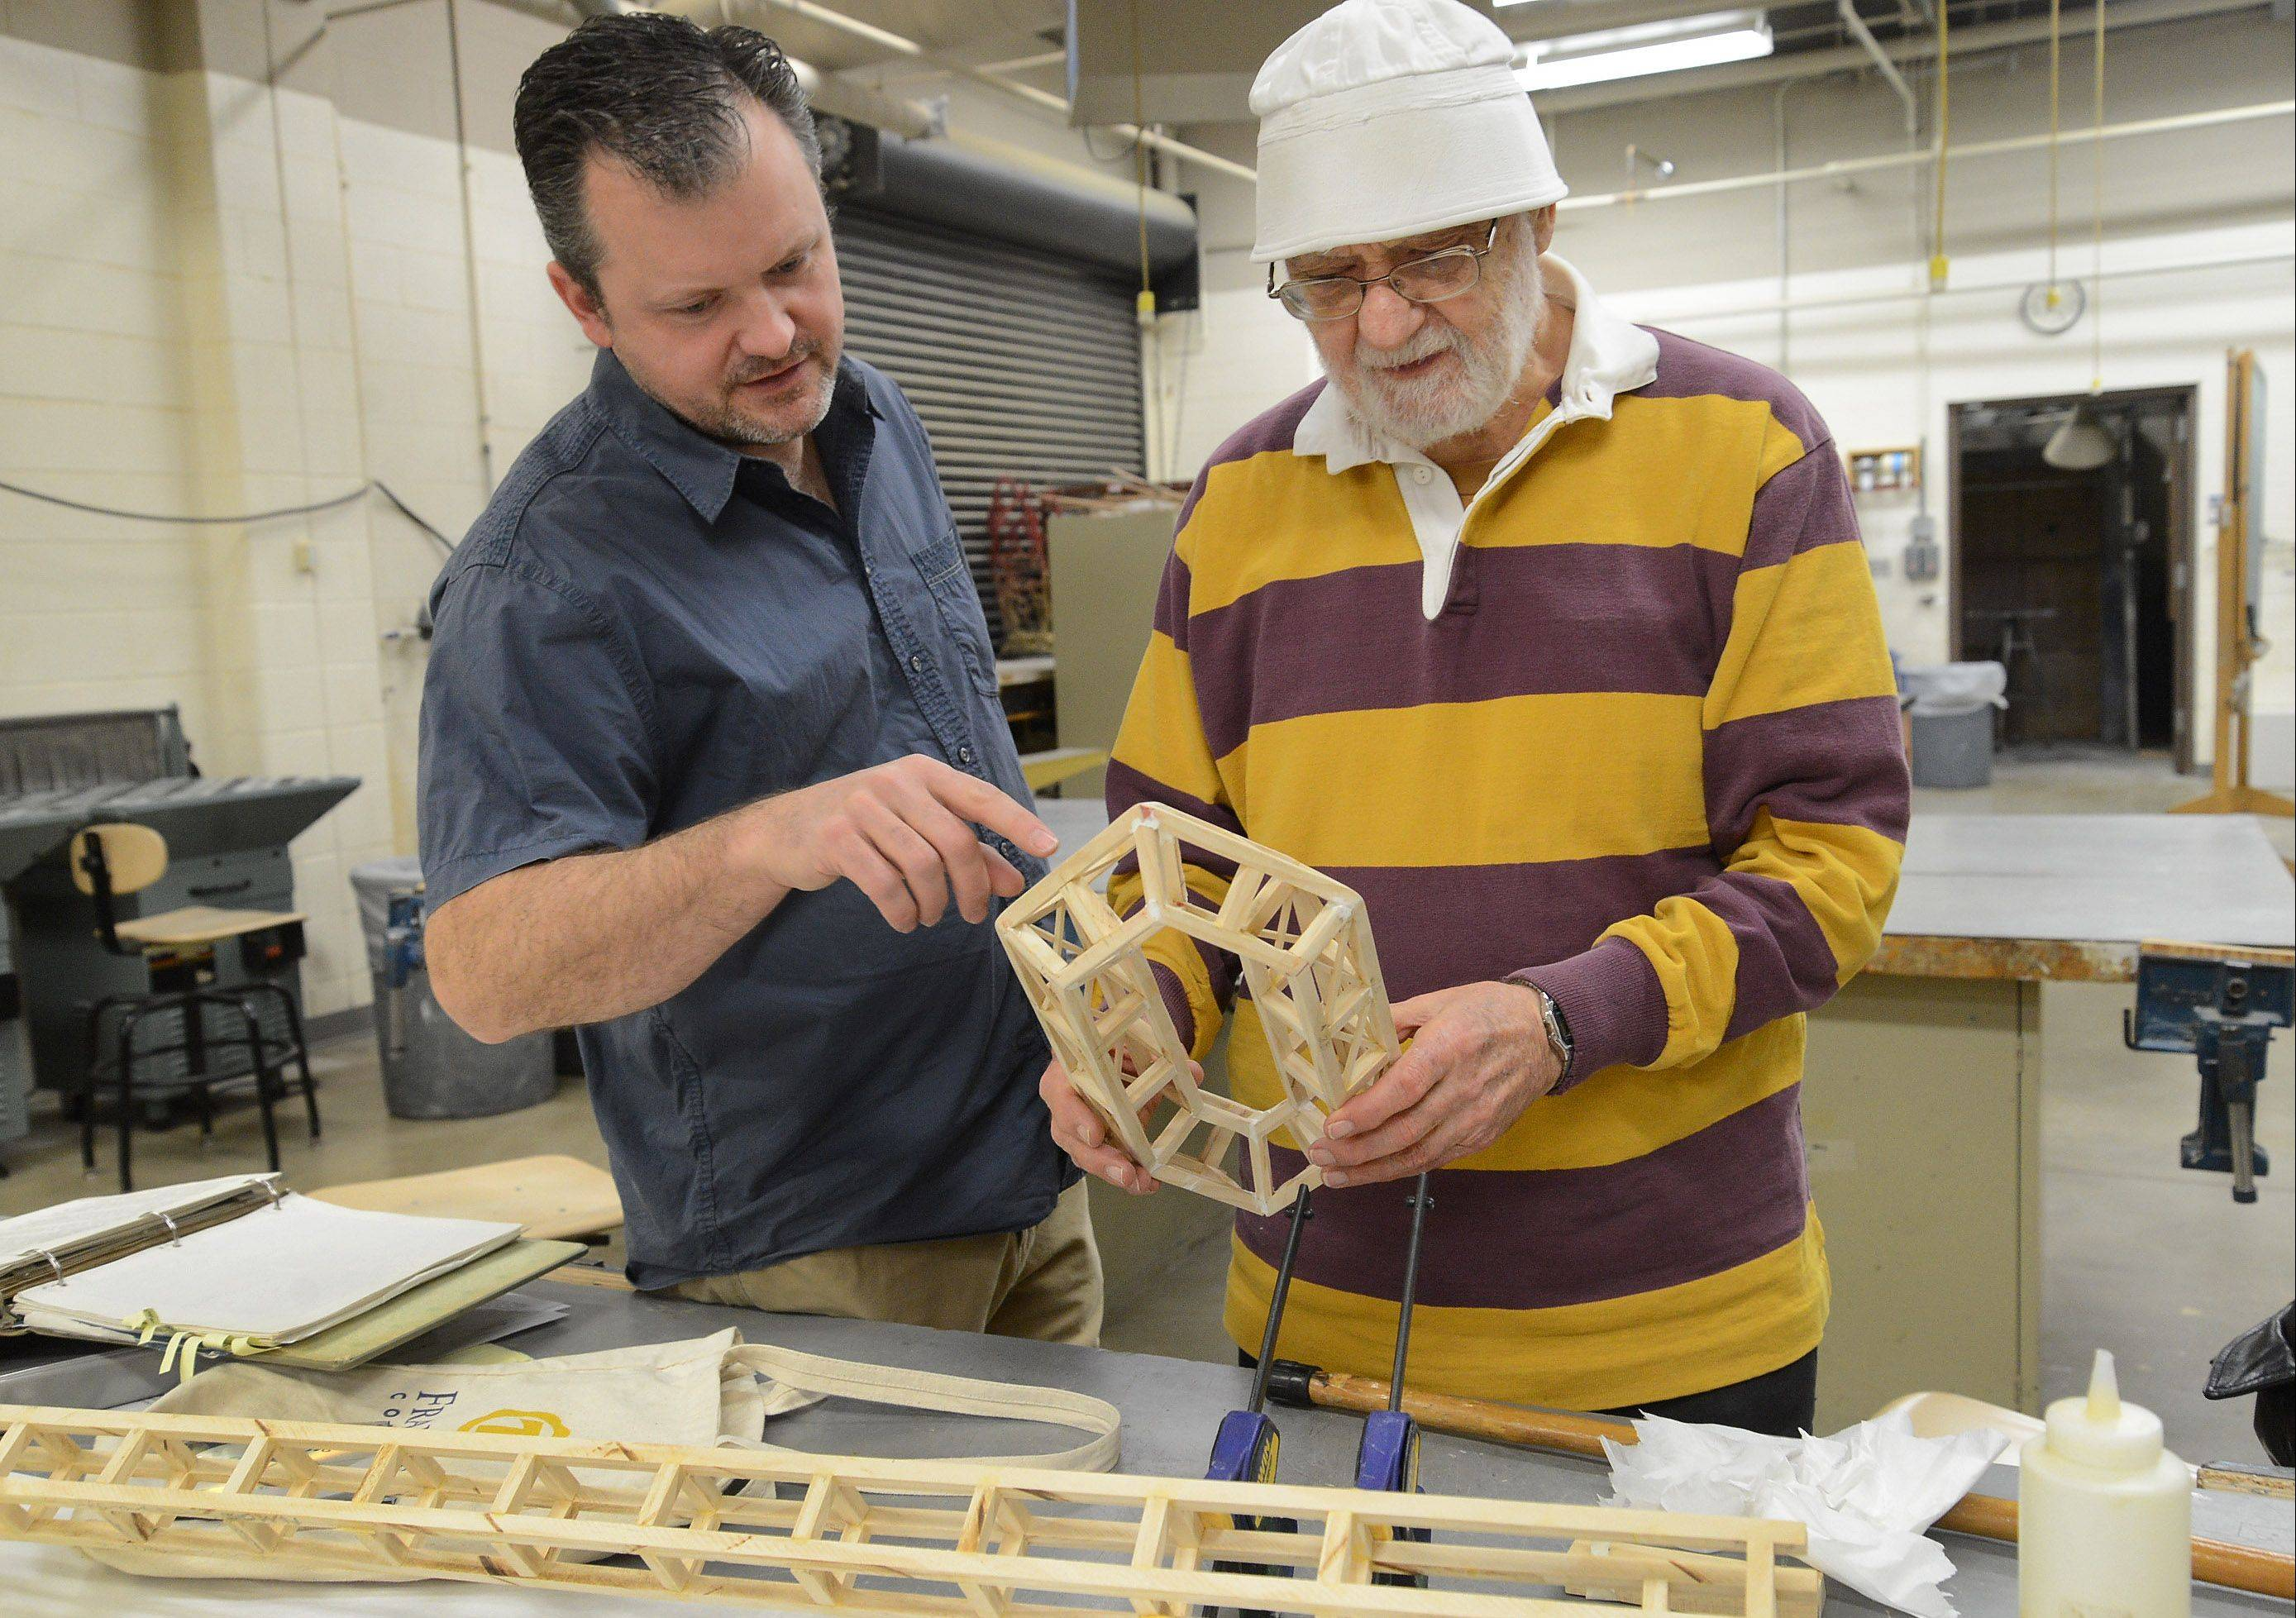 Nobody has taken more Harper College art classes than Bernie Bluestein, right. Art professor Jason Peot, left, has taught at Harper for 16 years, and Bluestein, 90, has taken every one of his classes.